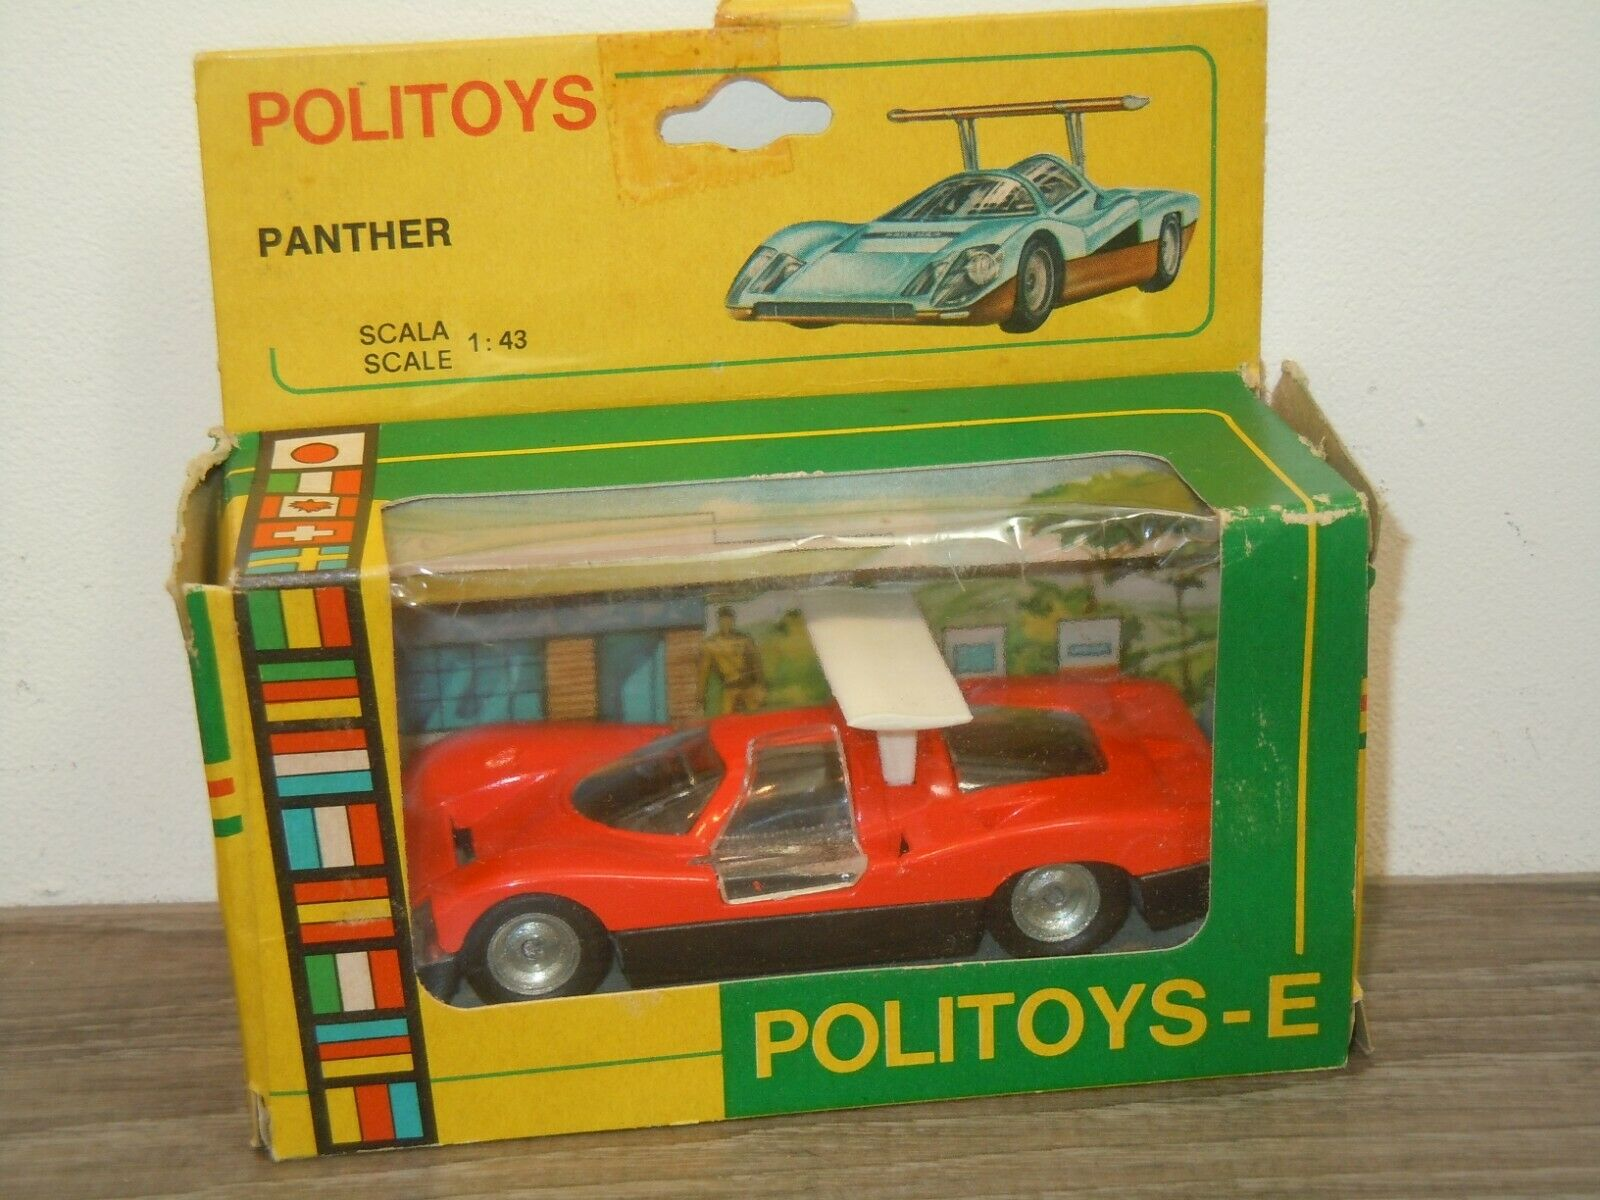 Panther - Politoys 564  1 43 in Box 36703 36703 36703 252a19